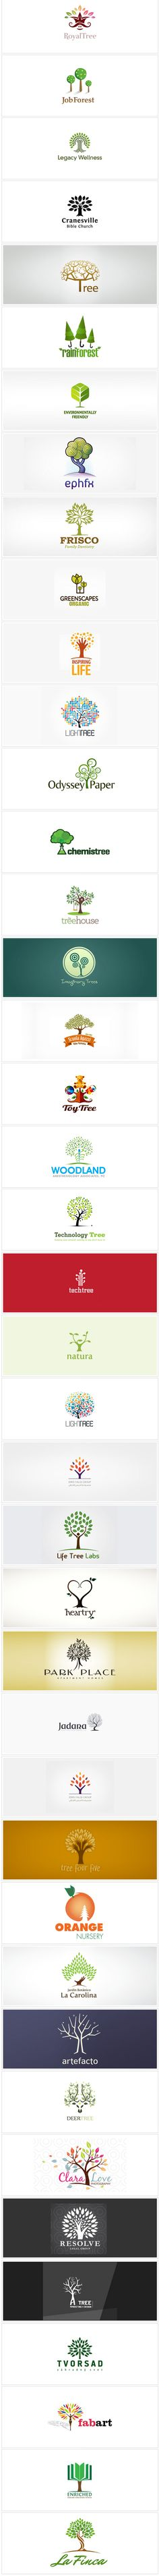 40 Creative Tree Logo Design examples for your inspiration